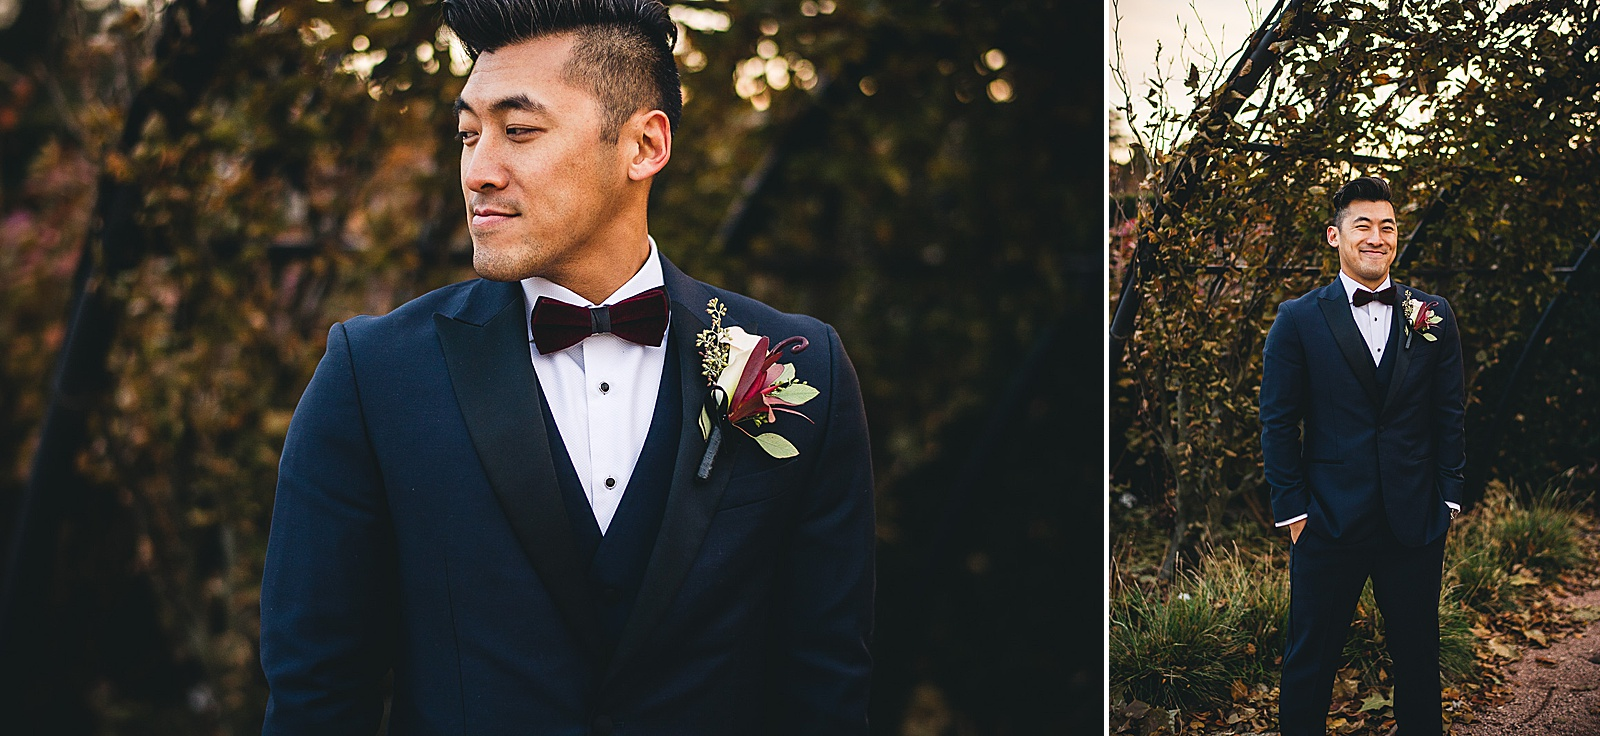 19 groom photo inspo - Chicago Wedding Photography at Morton Arboretum // Alex + Tim